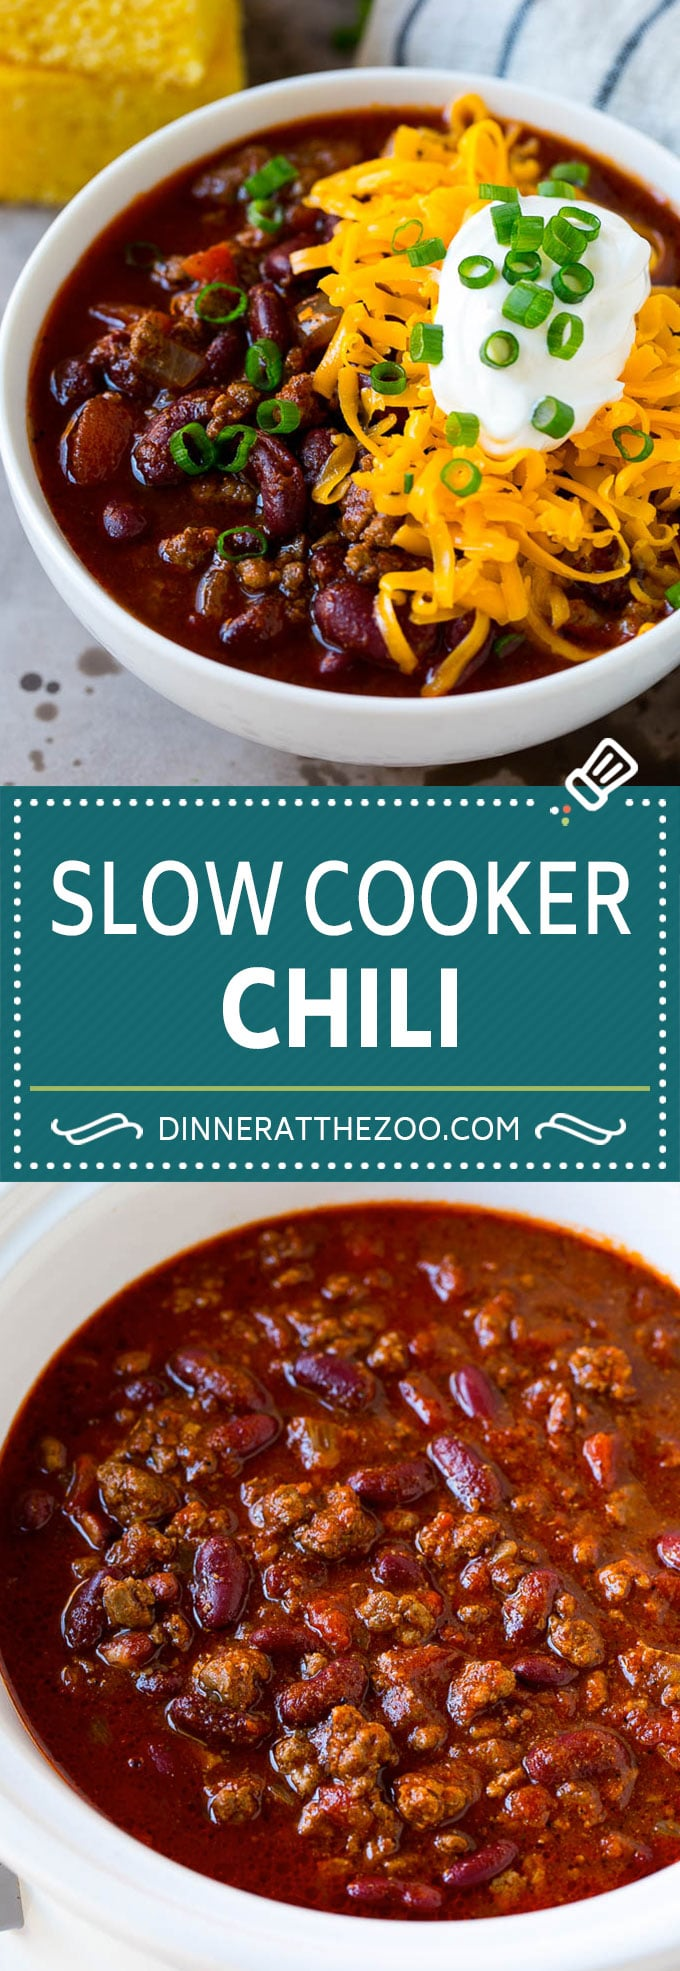 Slow Cooker Chili Recipe | Crock Pot Chili | Beef Chili | Beef and Bean Chili #chili #soup #beef #slowcooker #crockpot #dinner #dinneratthezoo